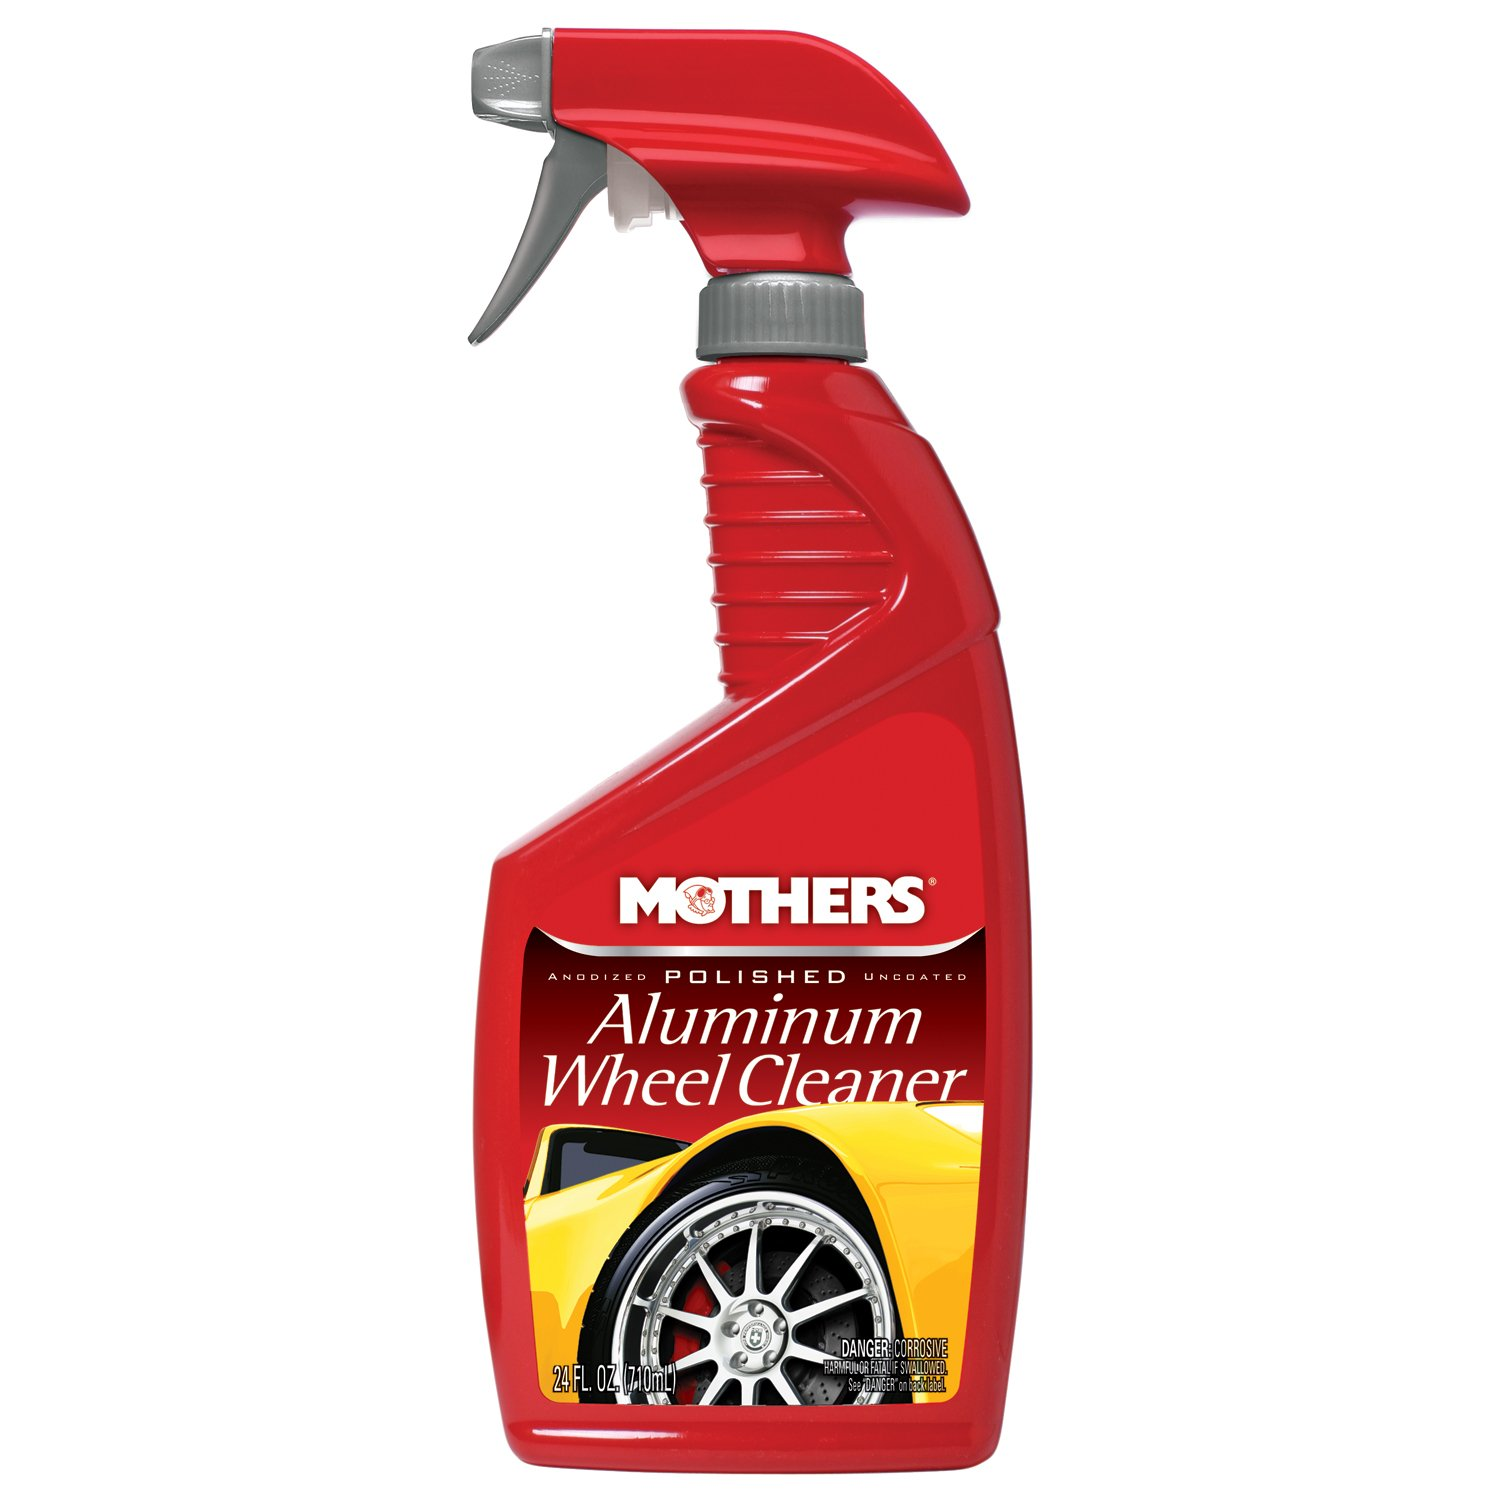 Mothers 06024-6 Polished Aluminum Wheel Cleaner - 24 oz, (Pack of 6)